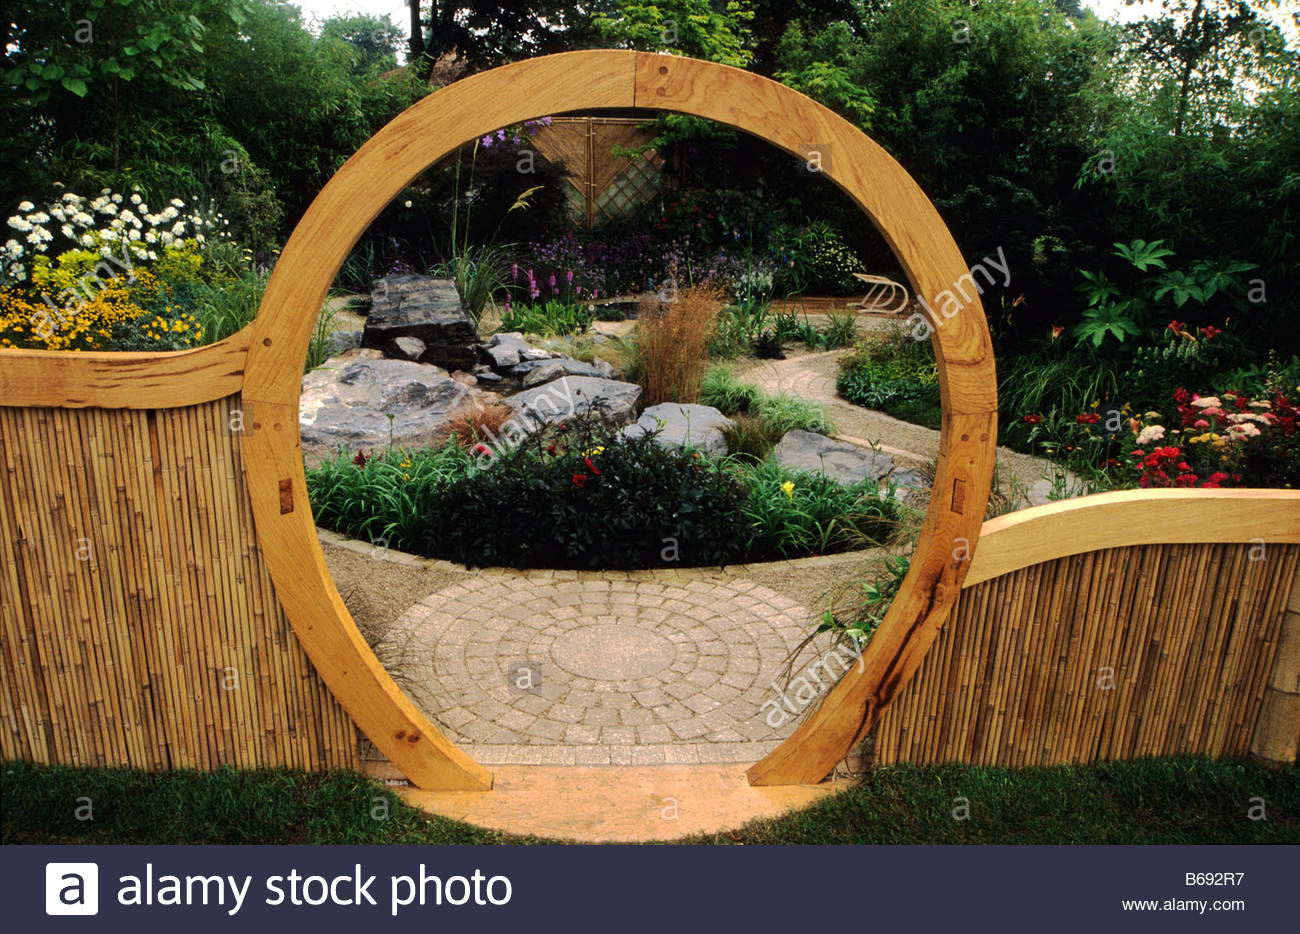 Beau Hampton Court FS 1999 Feng Shui Garden Design Pamela Woods Wooden Moon Gate  By James Showers Bamboo Fence